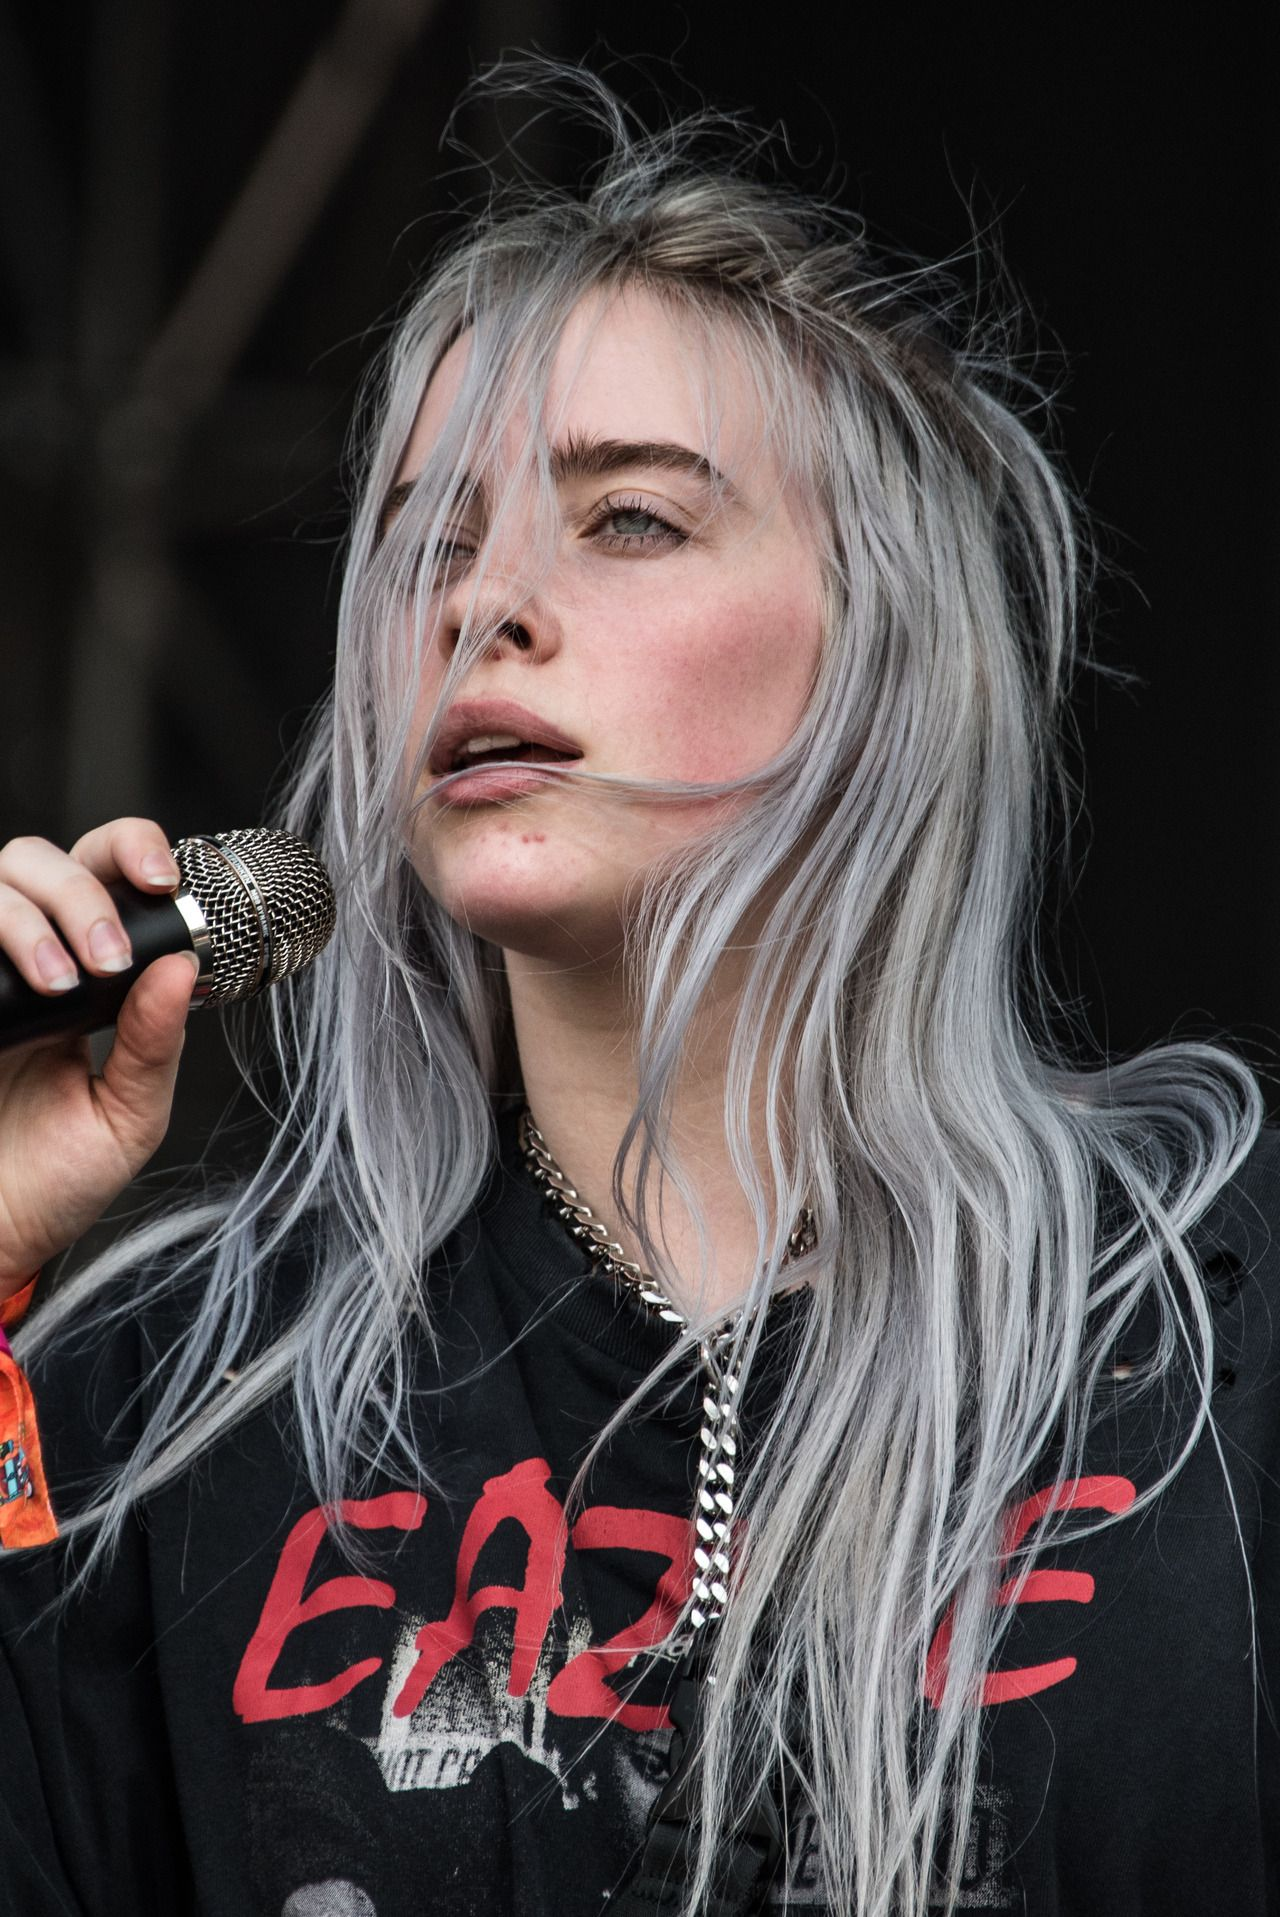 Billie Eilish Wallpaper Hd Computer Billie Billie Eilish Celebrities